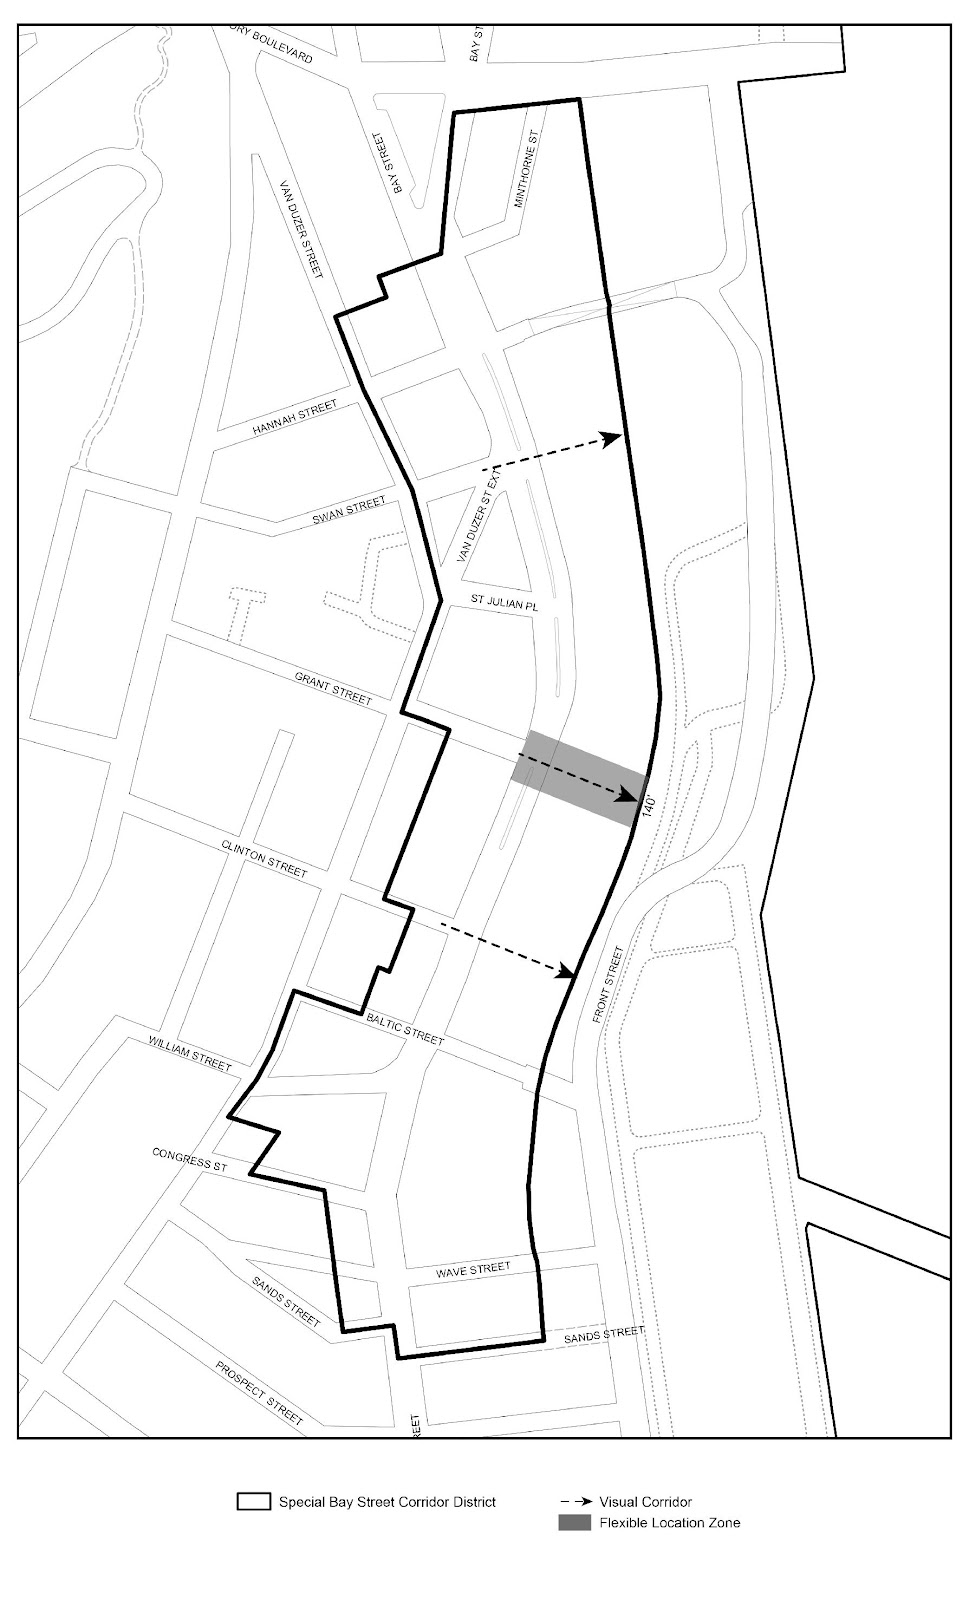 Zoning Resolutions Chapter 5: Special Bay Street Corridor District APPENDIX A.1